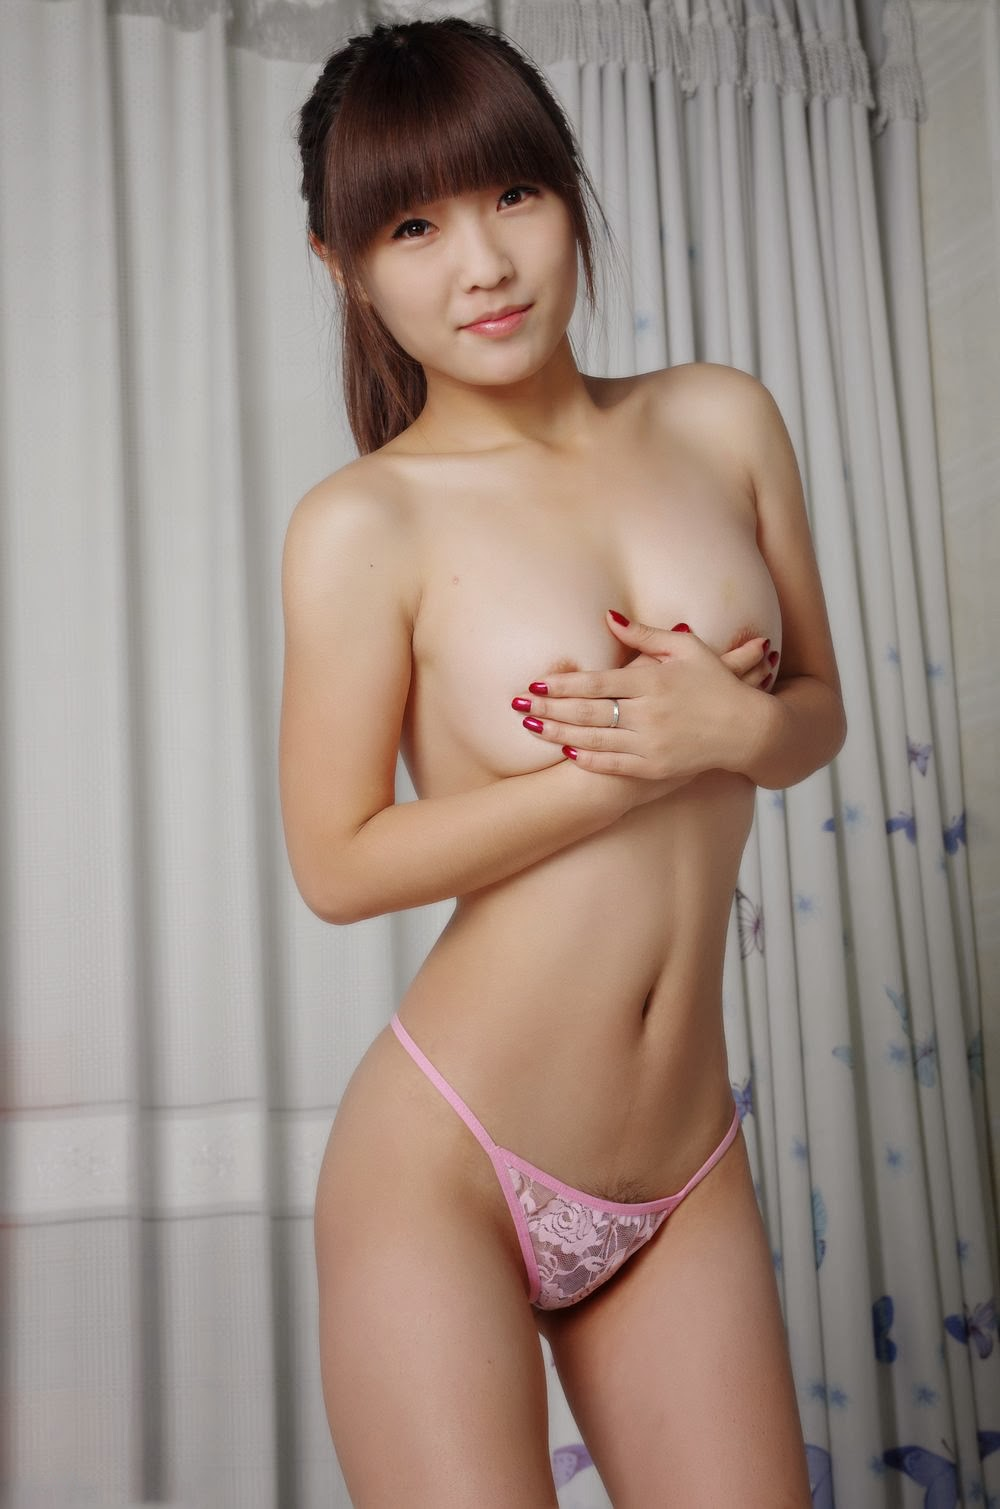 Nude Model Asian Ass And Naked Body